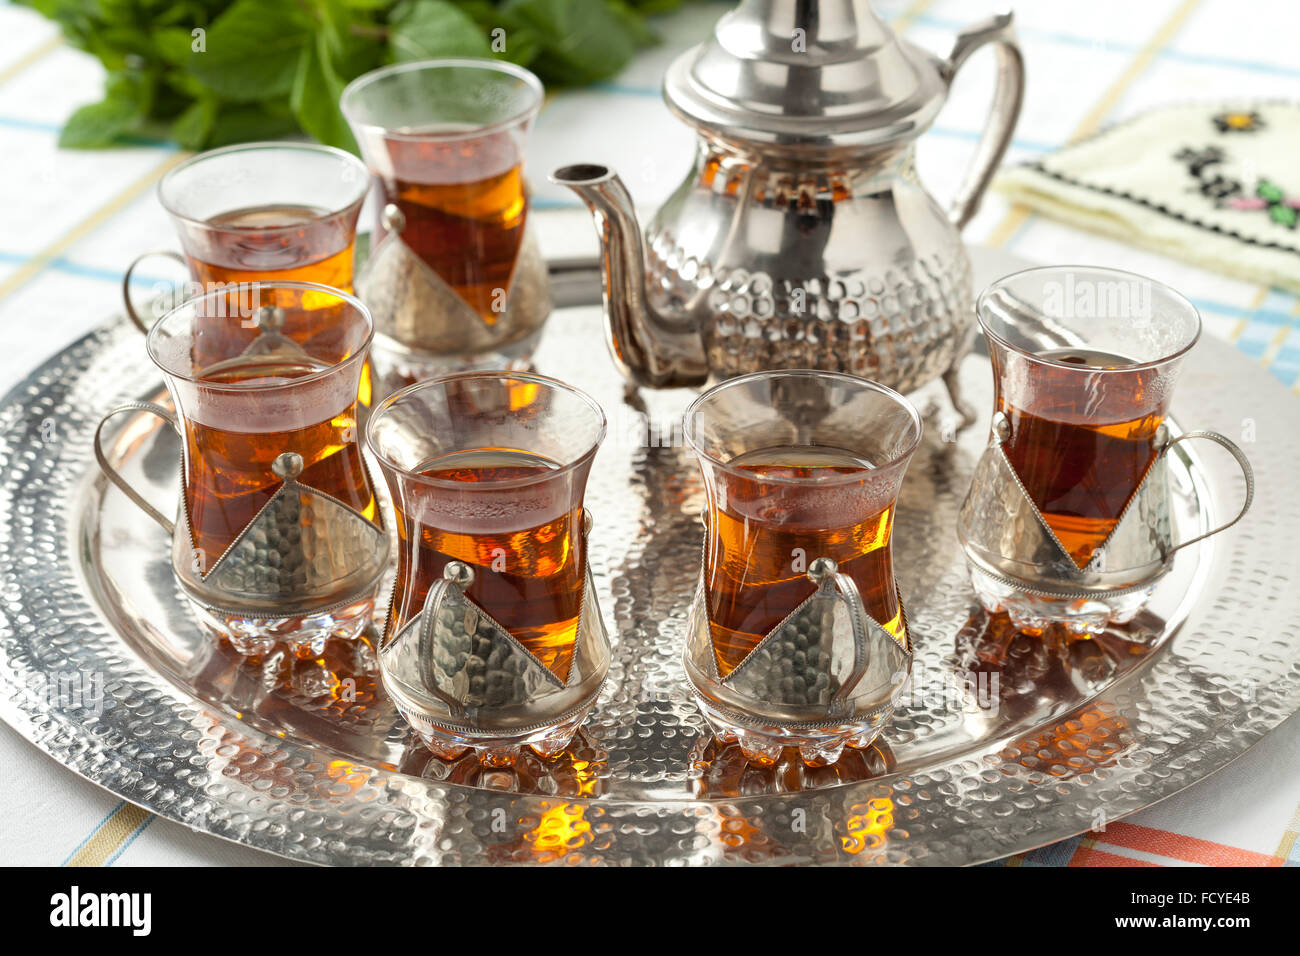 Traditional Moroccan tea glasses and pot on a tray - Stock Image